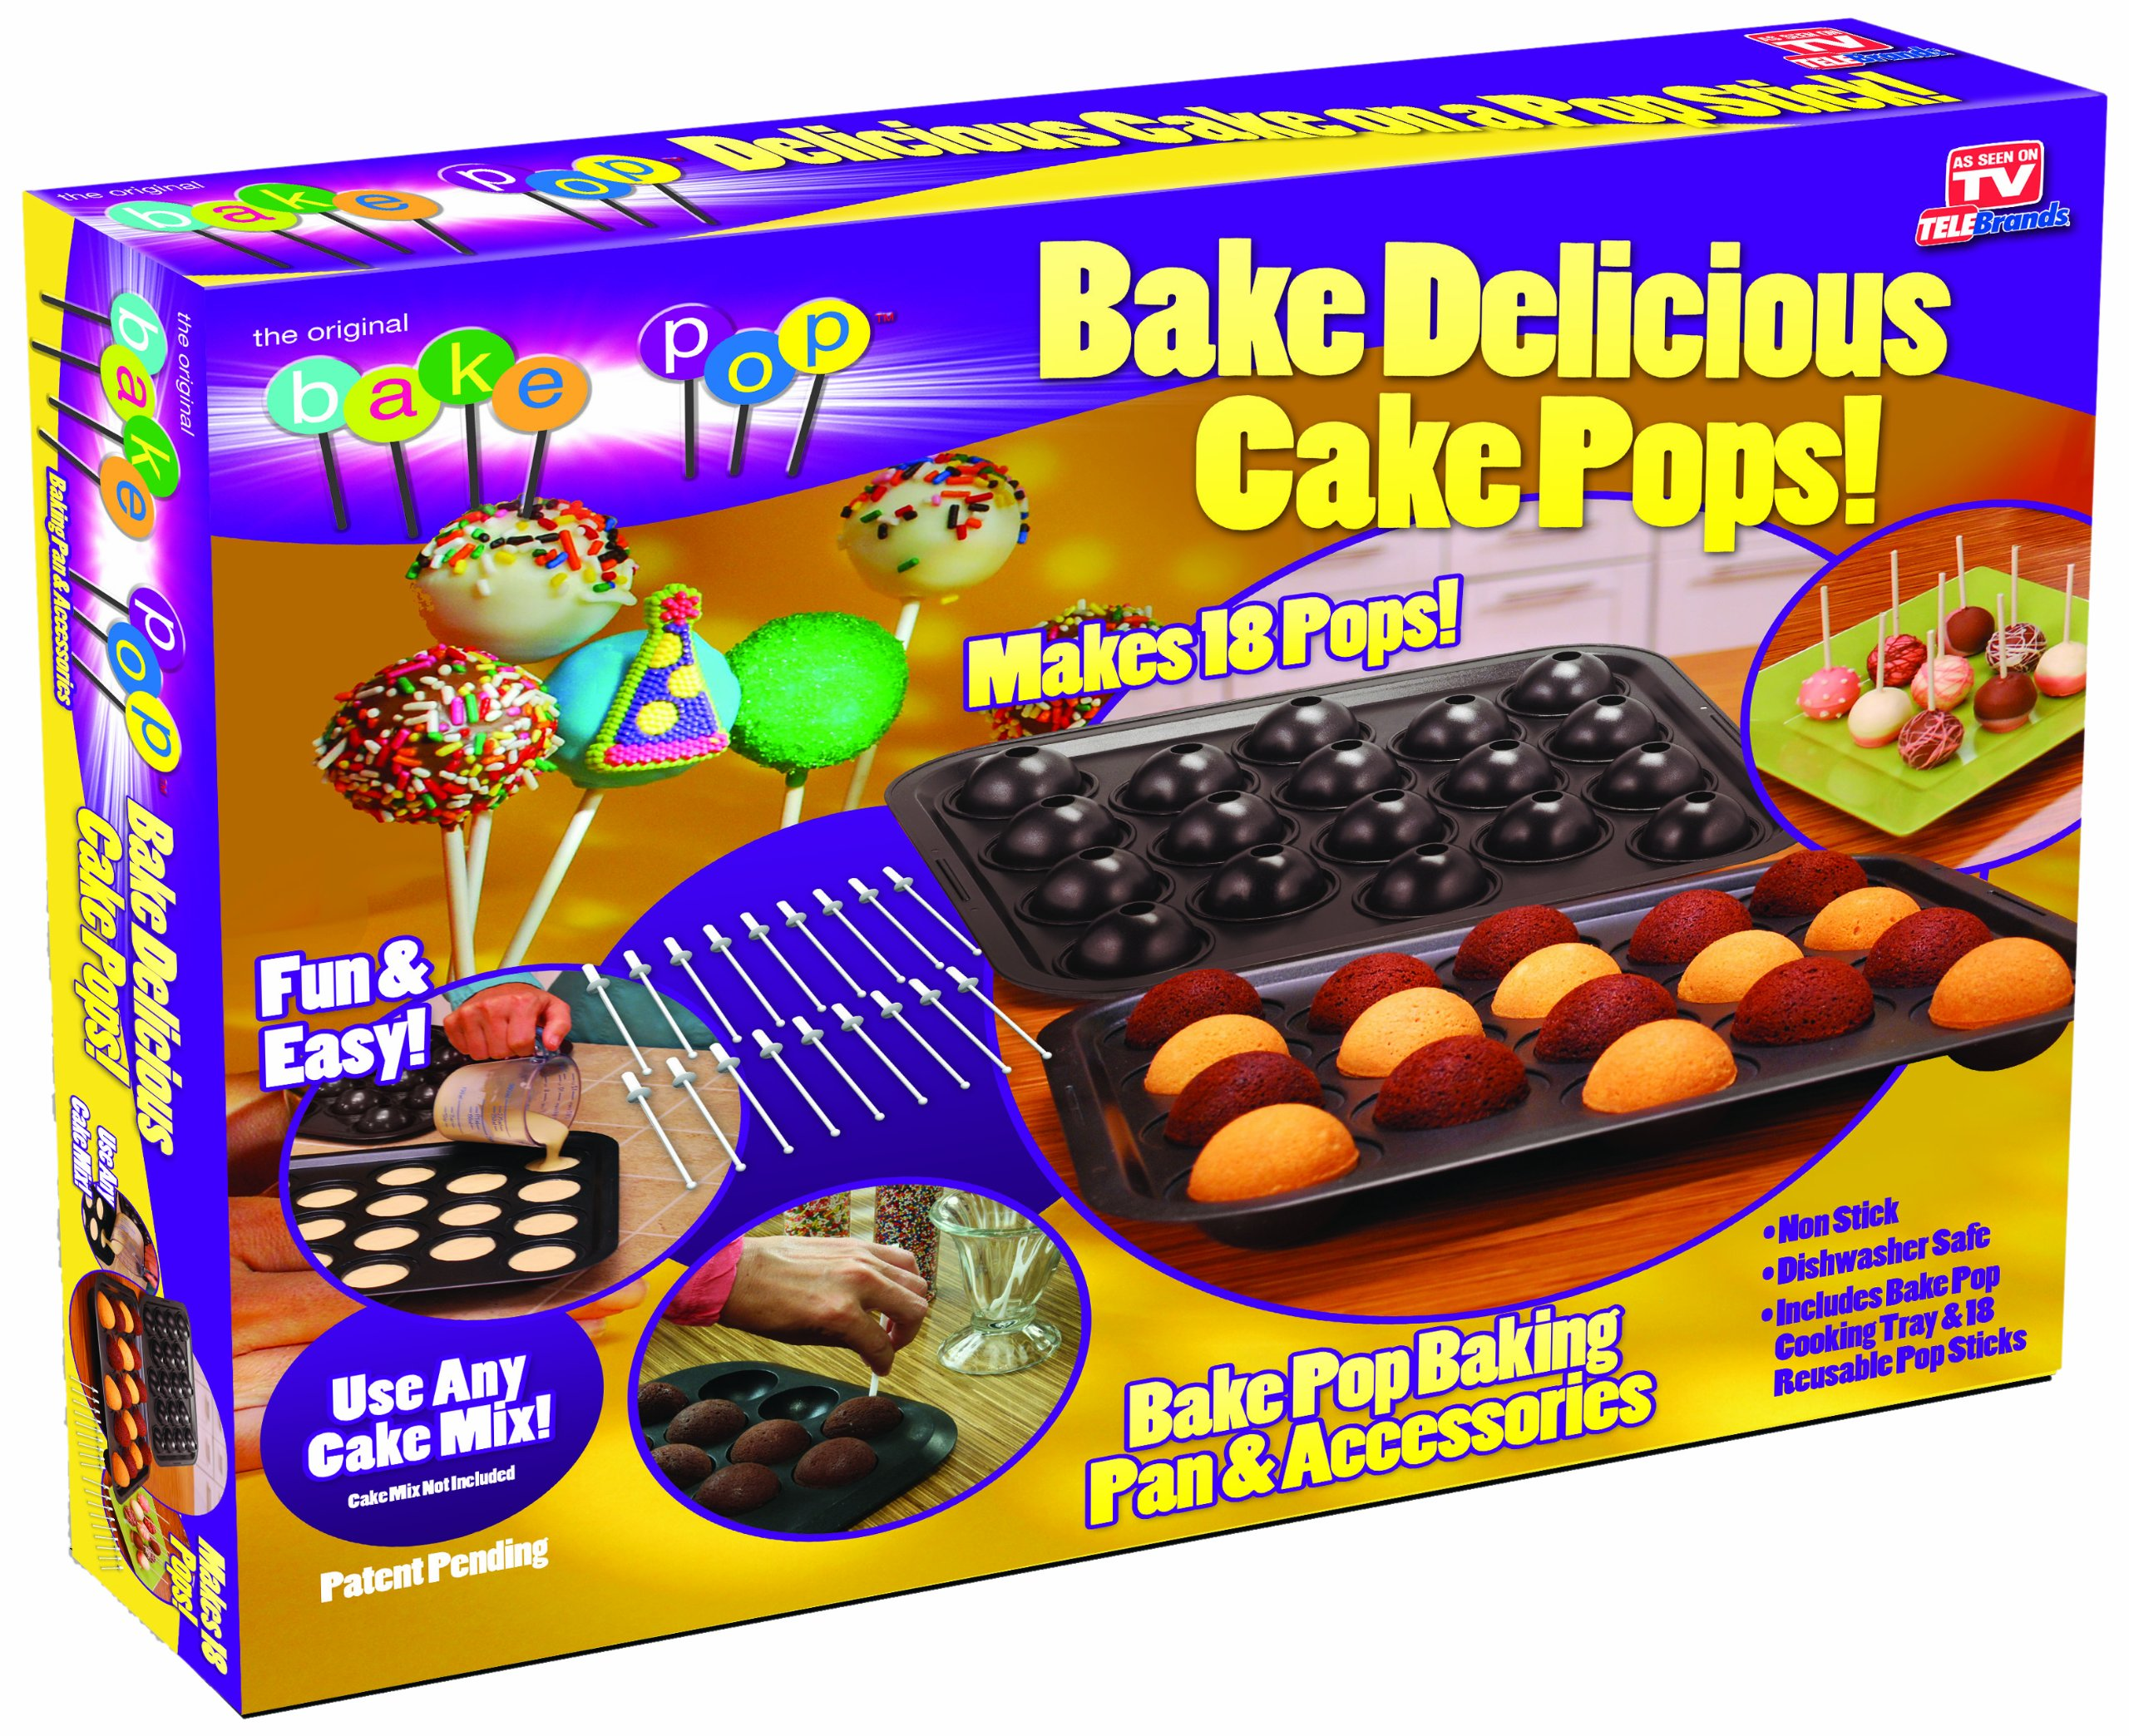 Telebrands 5720-12 Bake Pop: Cake Pops Baking Pan & Accessories by Telebrands